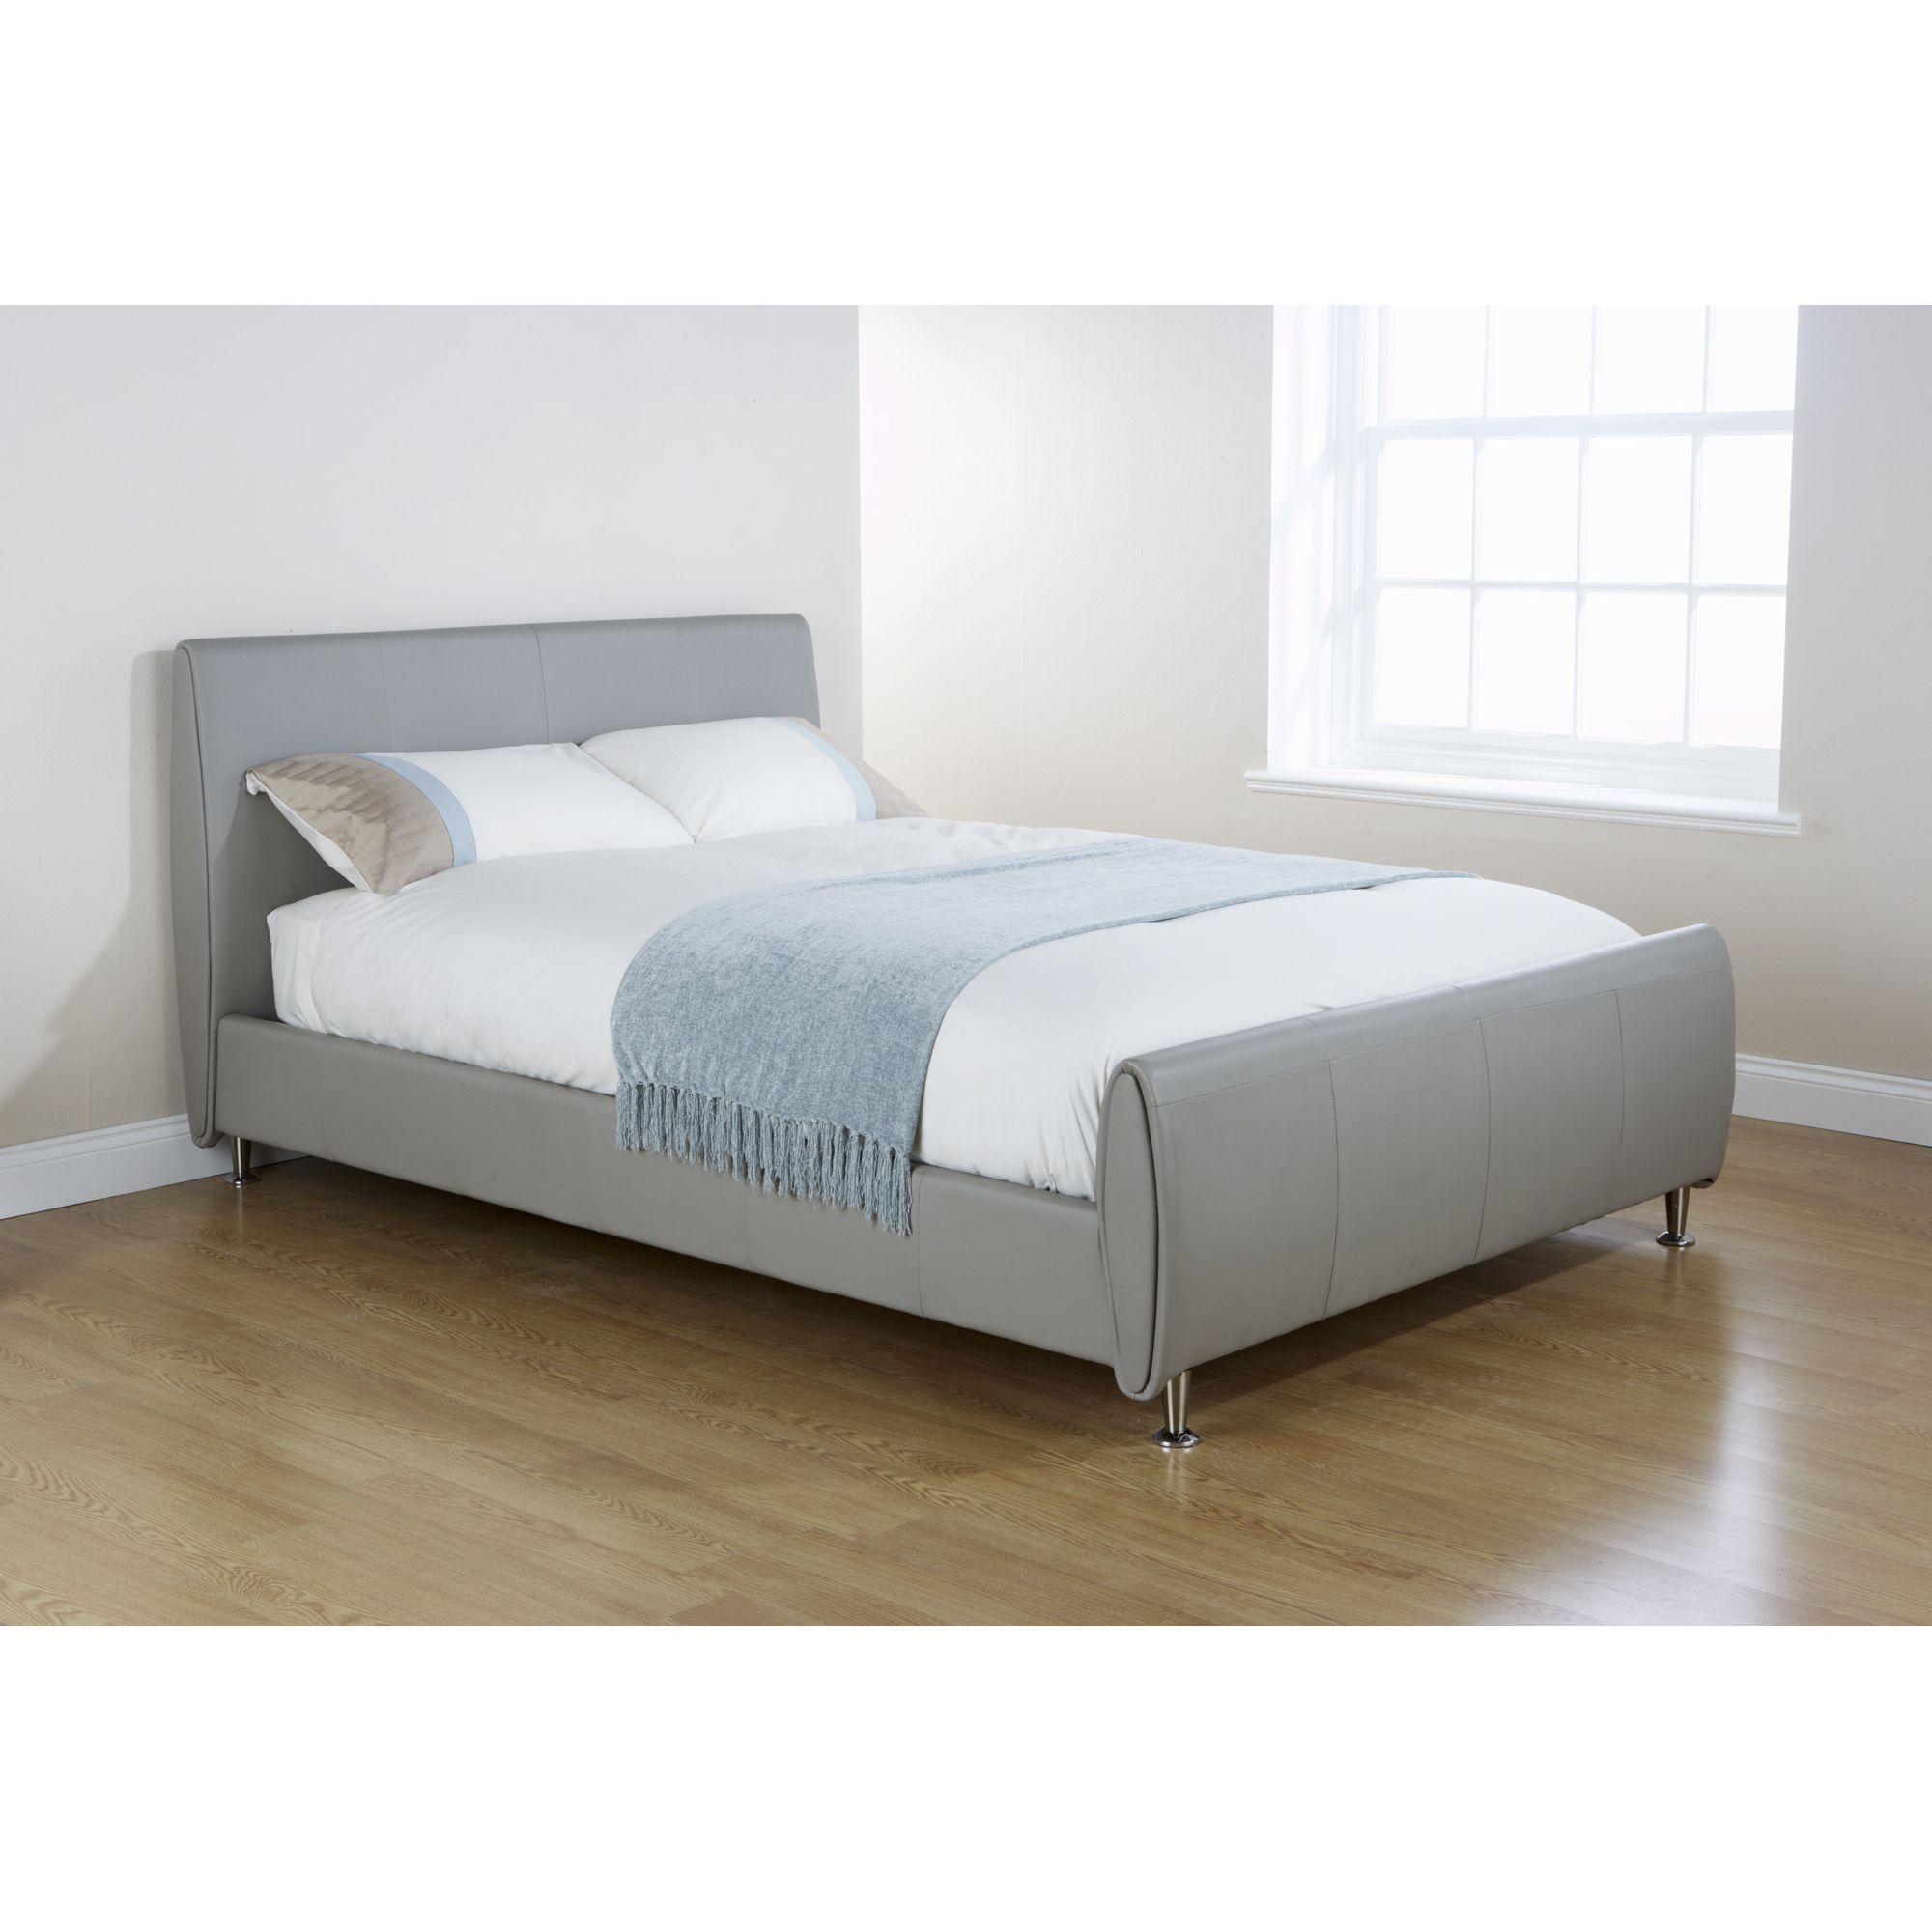 Elements Milano Double Bed at Tesco Direct